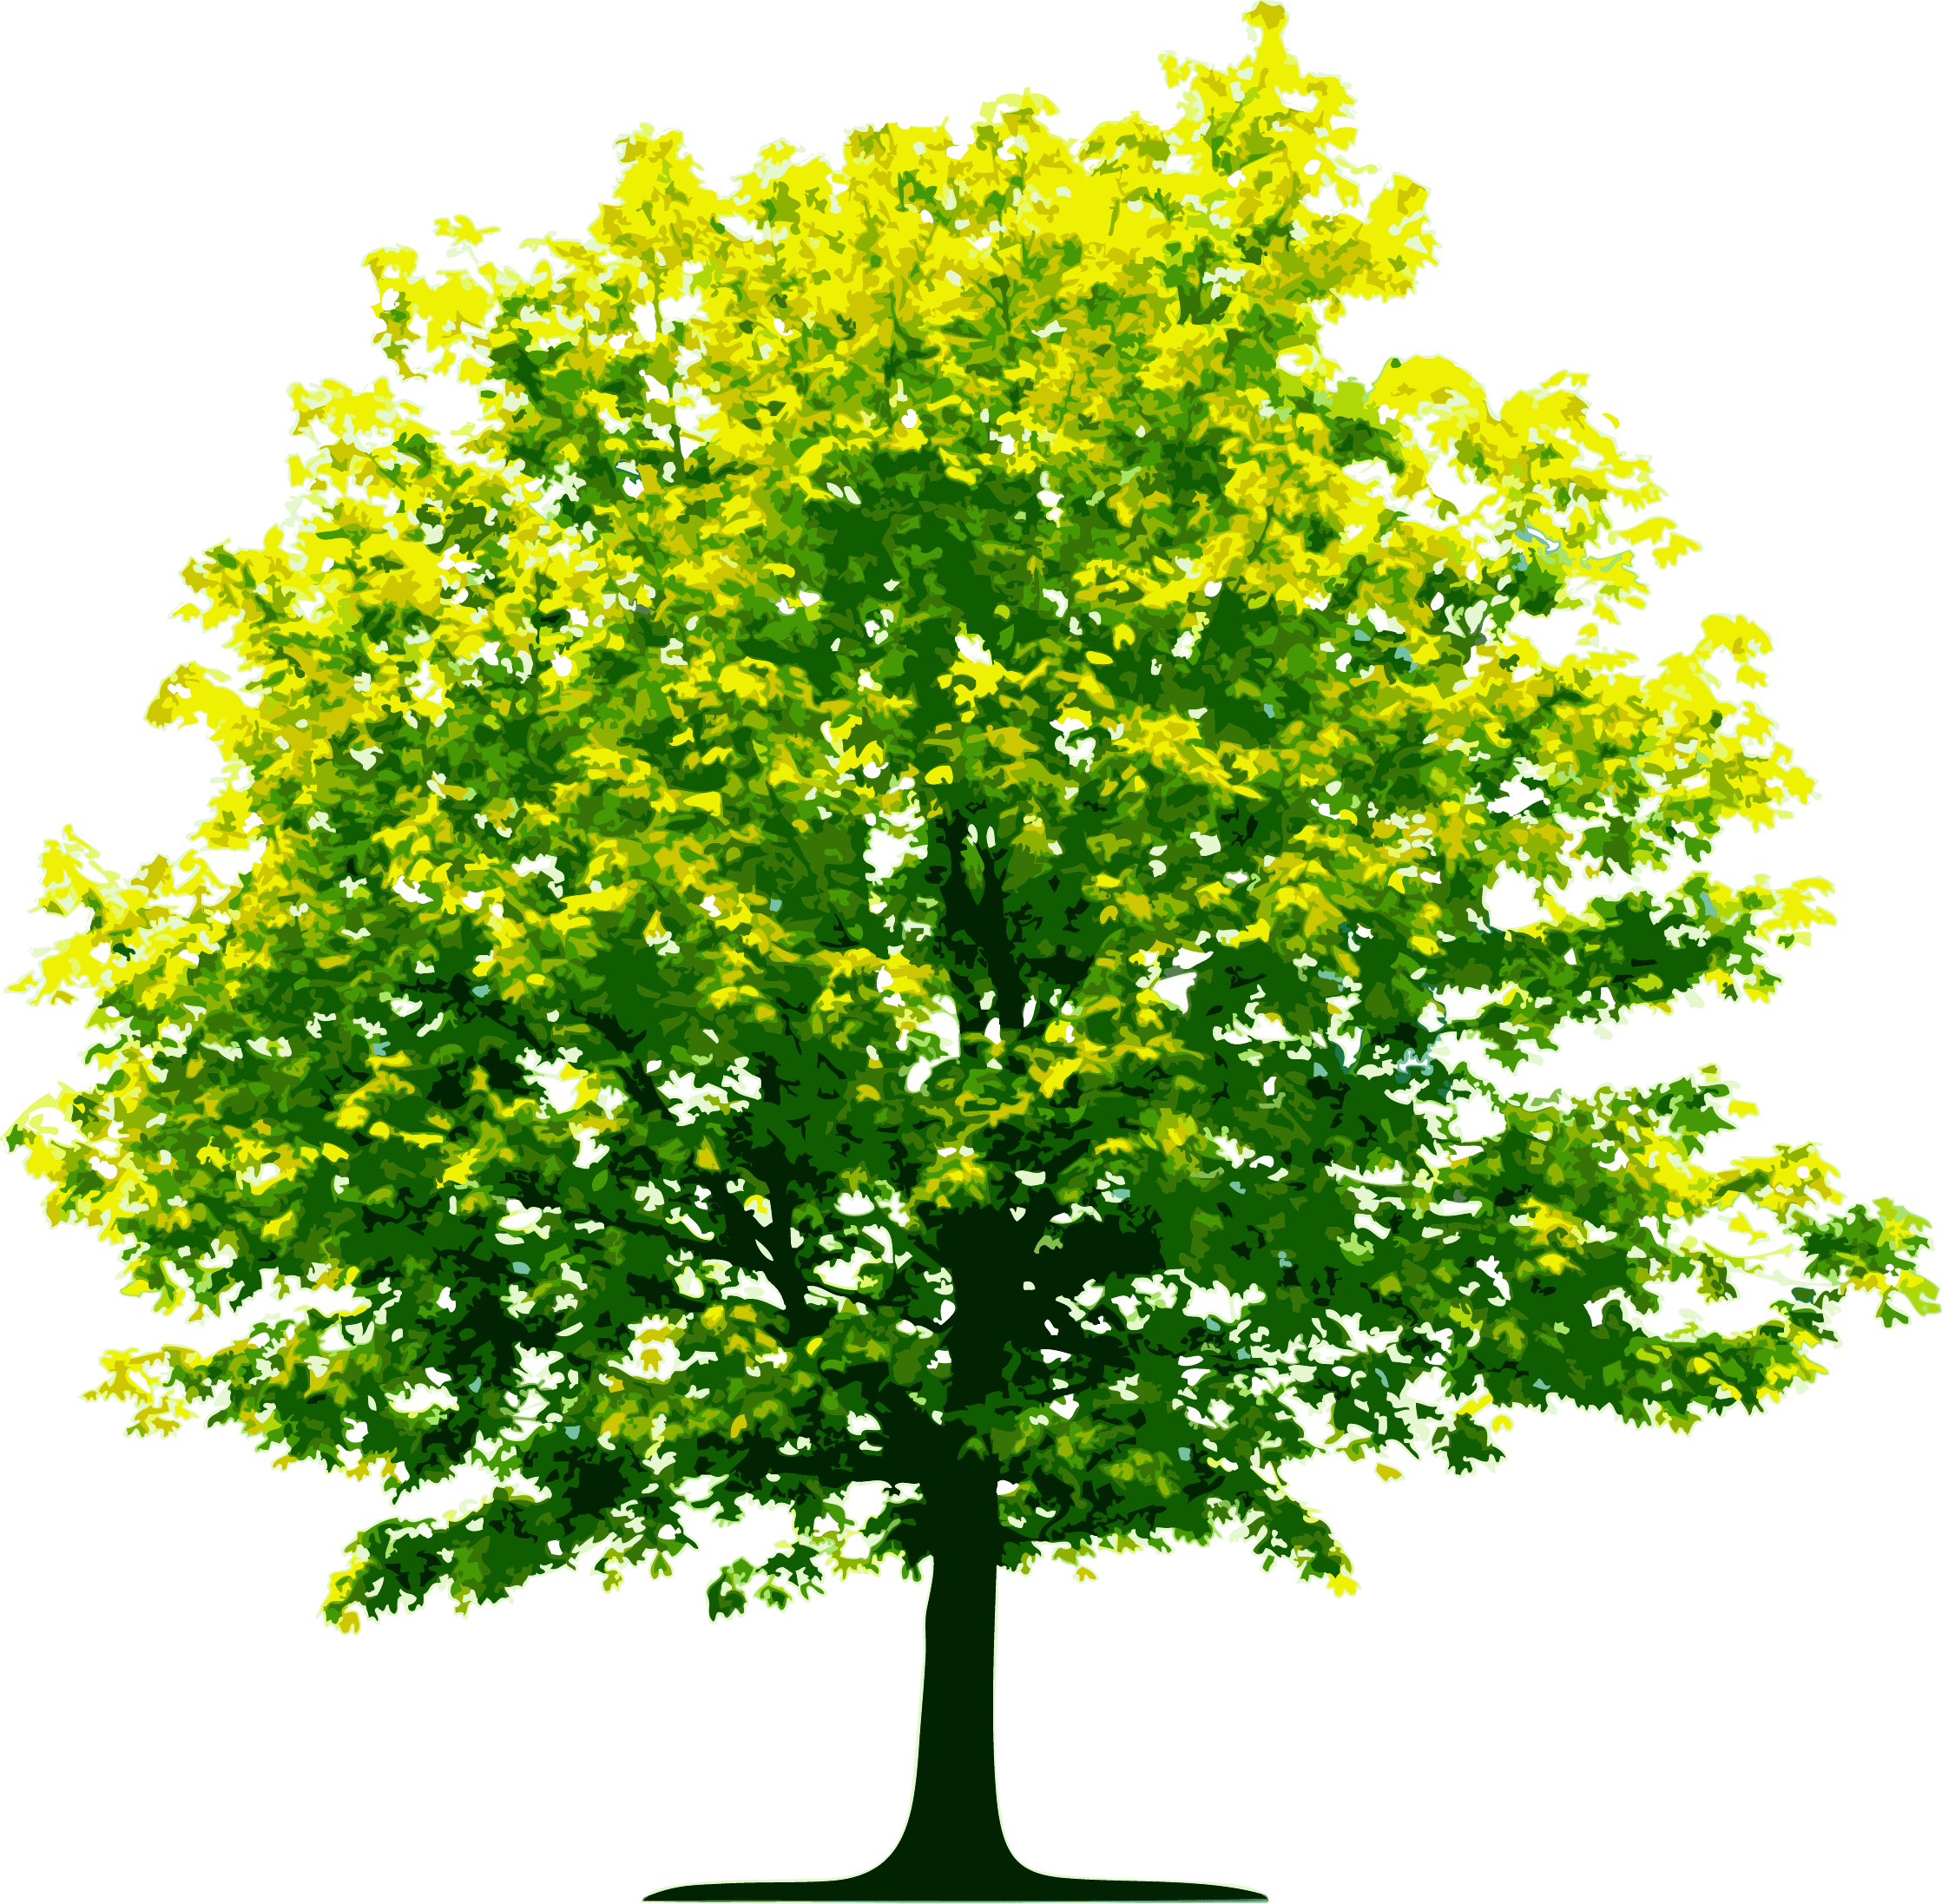 Download Tree Png Image Download Picture HQ PNG Image.